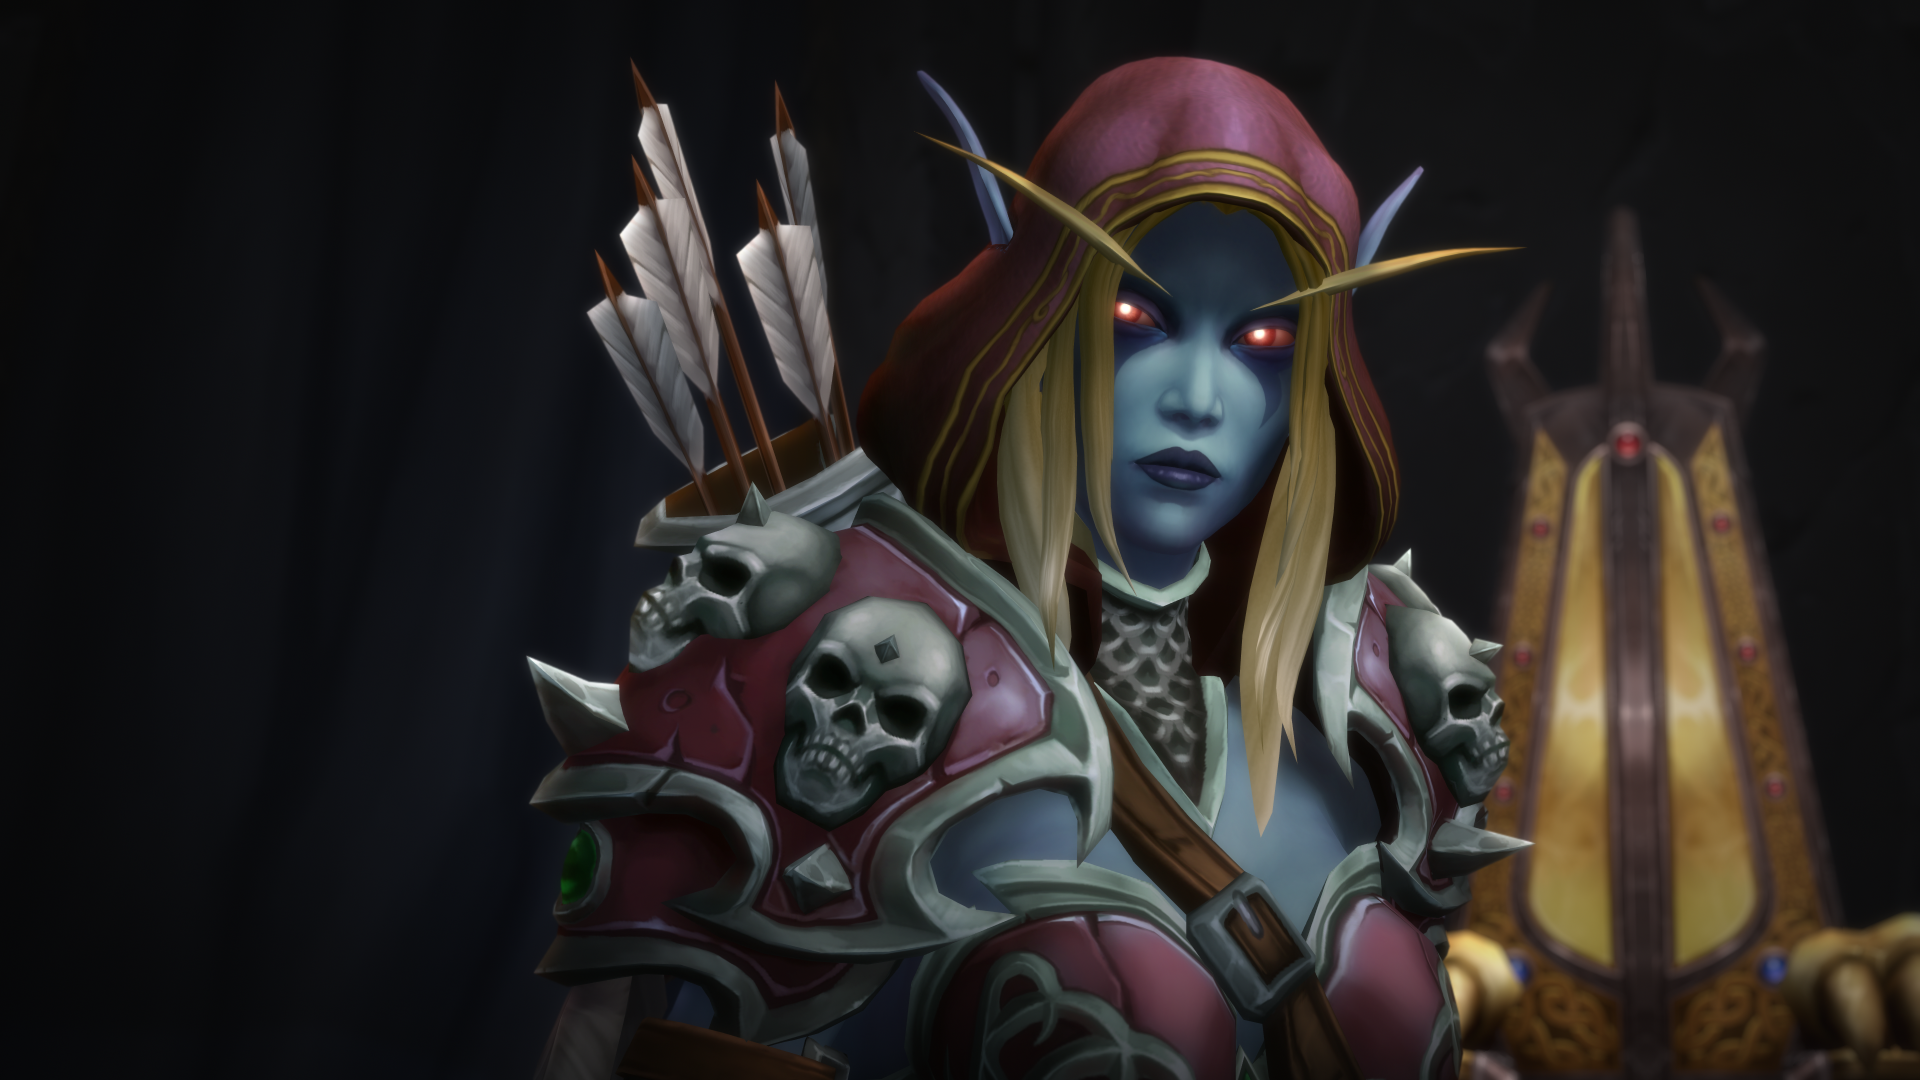 World_of_Warcraft_Battle_for_Azeroth_Sylvanas